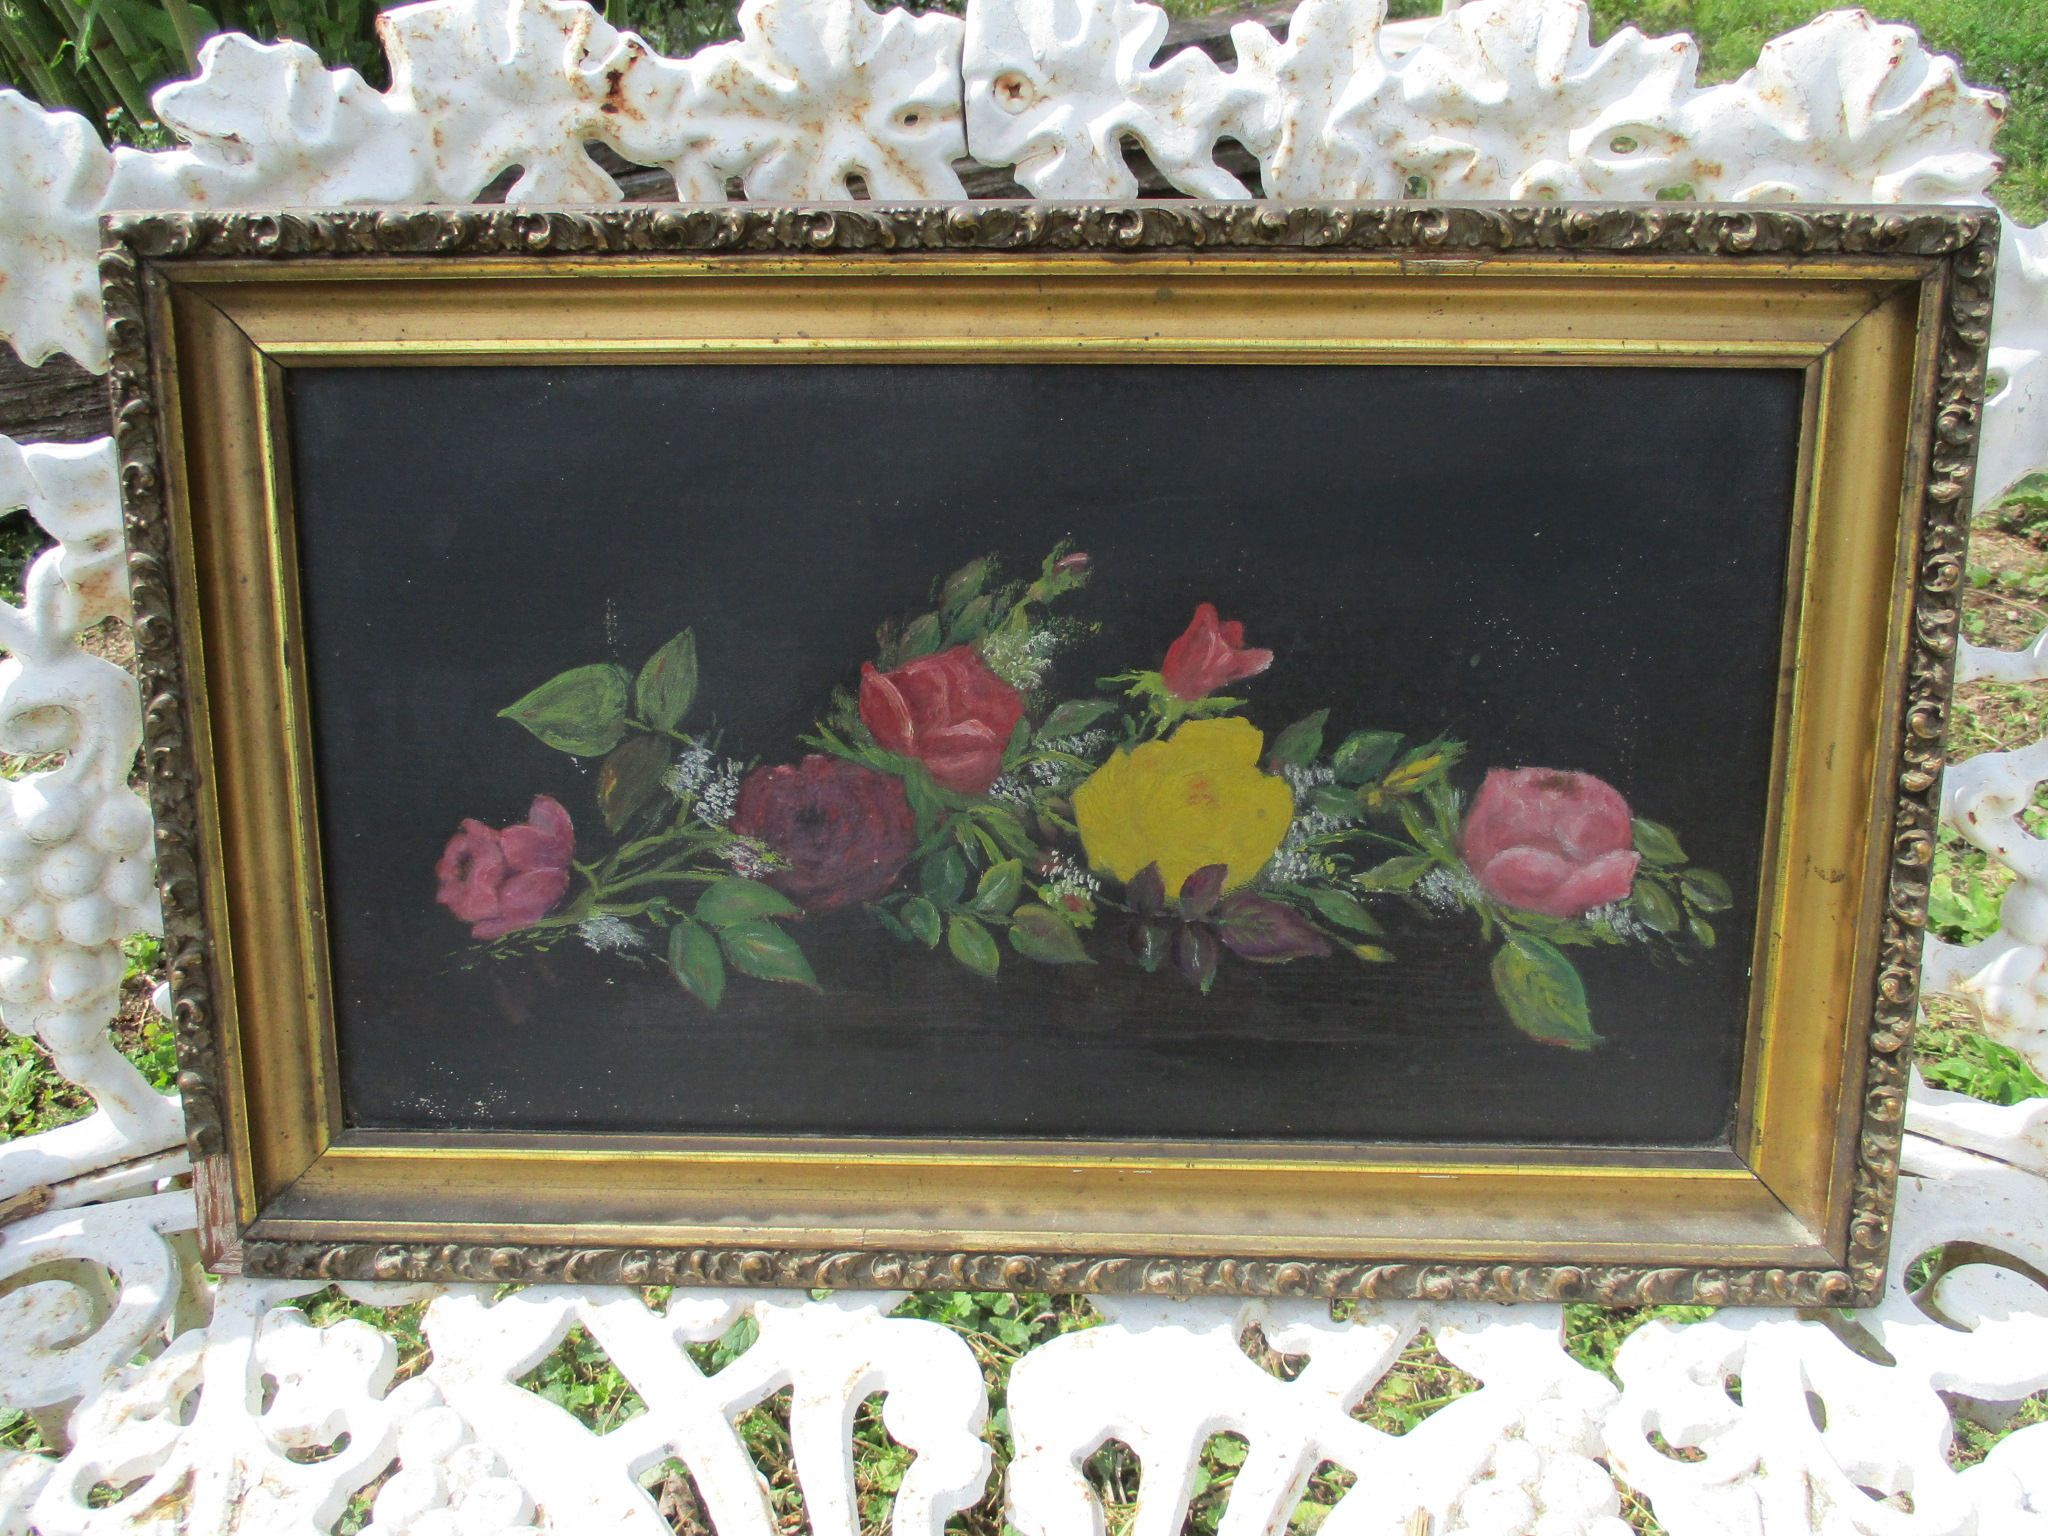 Free ship antique ornate gold gesso framed still life floral roses free ship antique ornate gold gesso framed still life floral roses spray oil on canvas painting victorian period picture frame x by treasuretrovemarket on jeuxipadfo Image collections